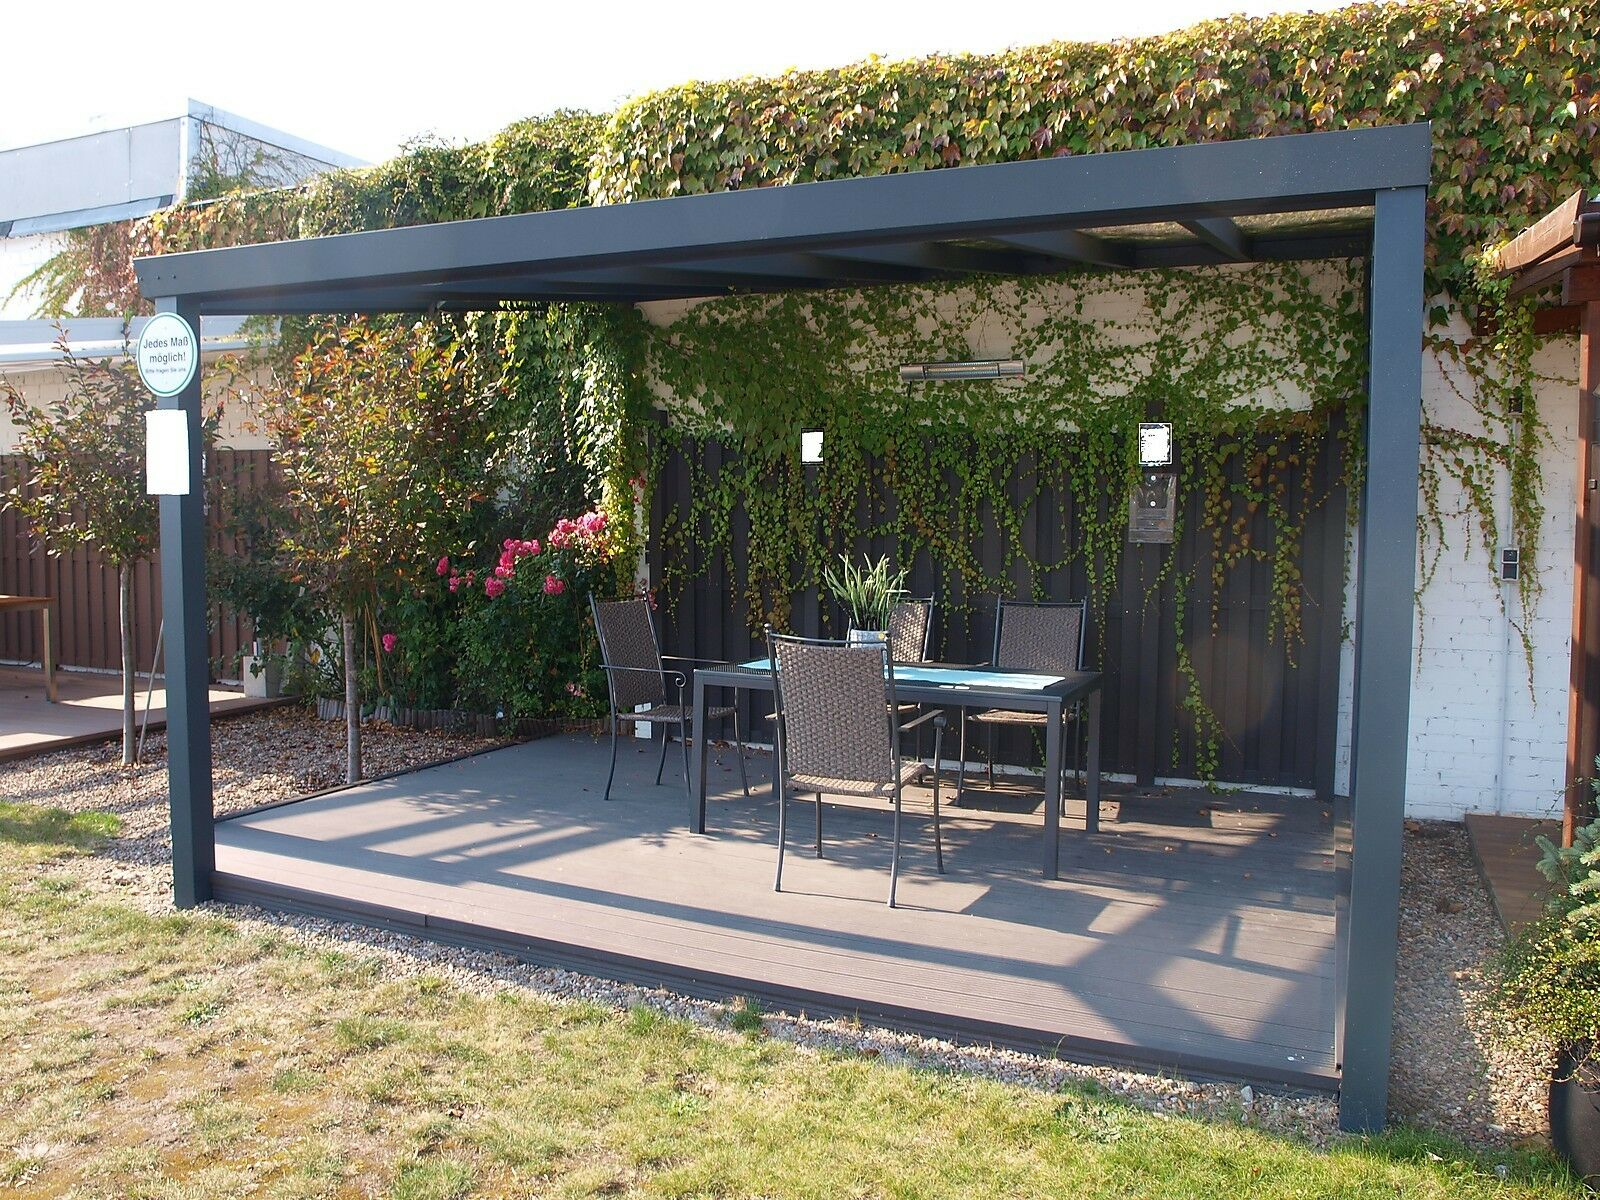 alu terrassendach mit vsg glas 6 00 x 3 00 m top qualit t terrassen berdachung. Black Bedroom Furniture Sets. Home Design Ideas